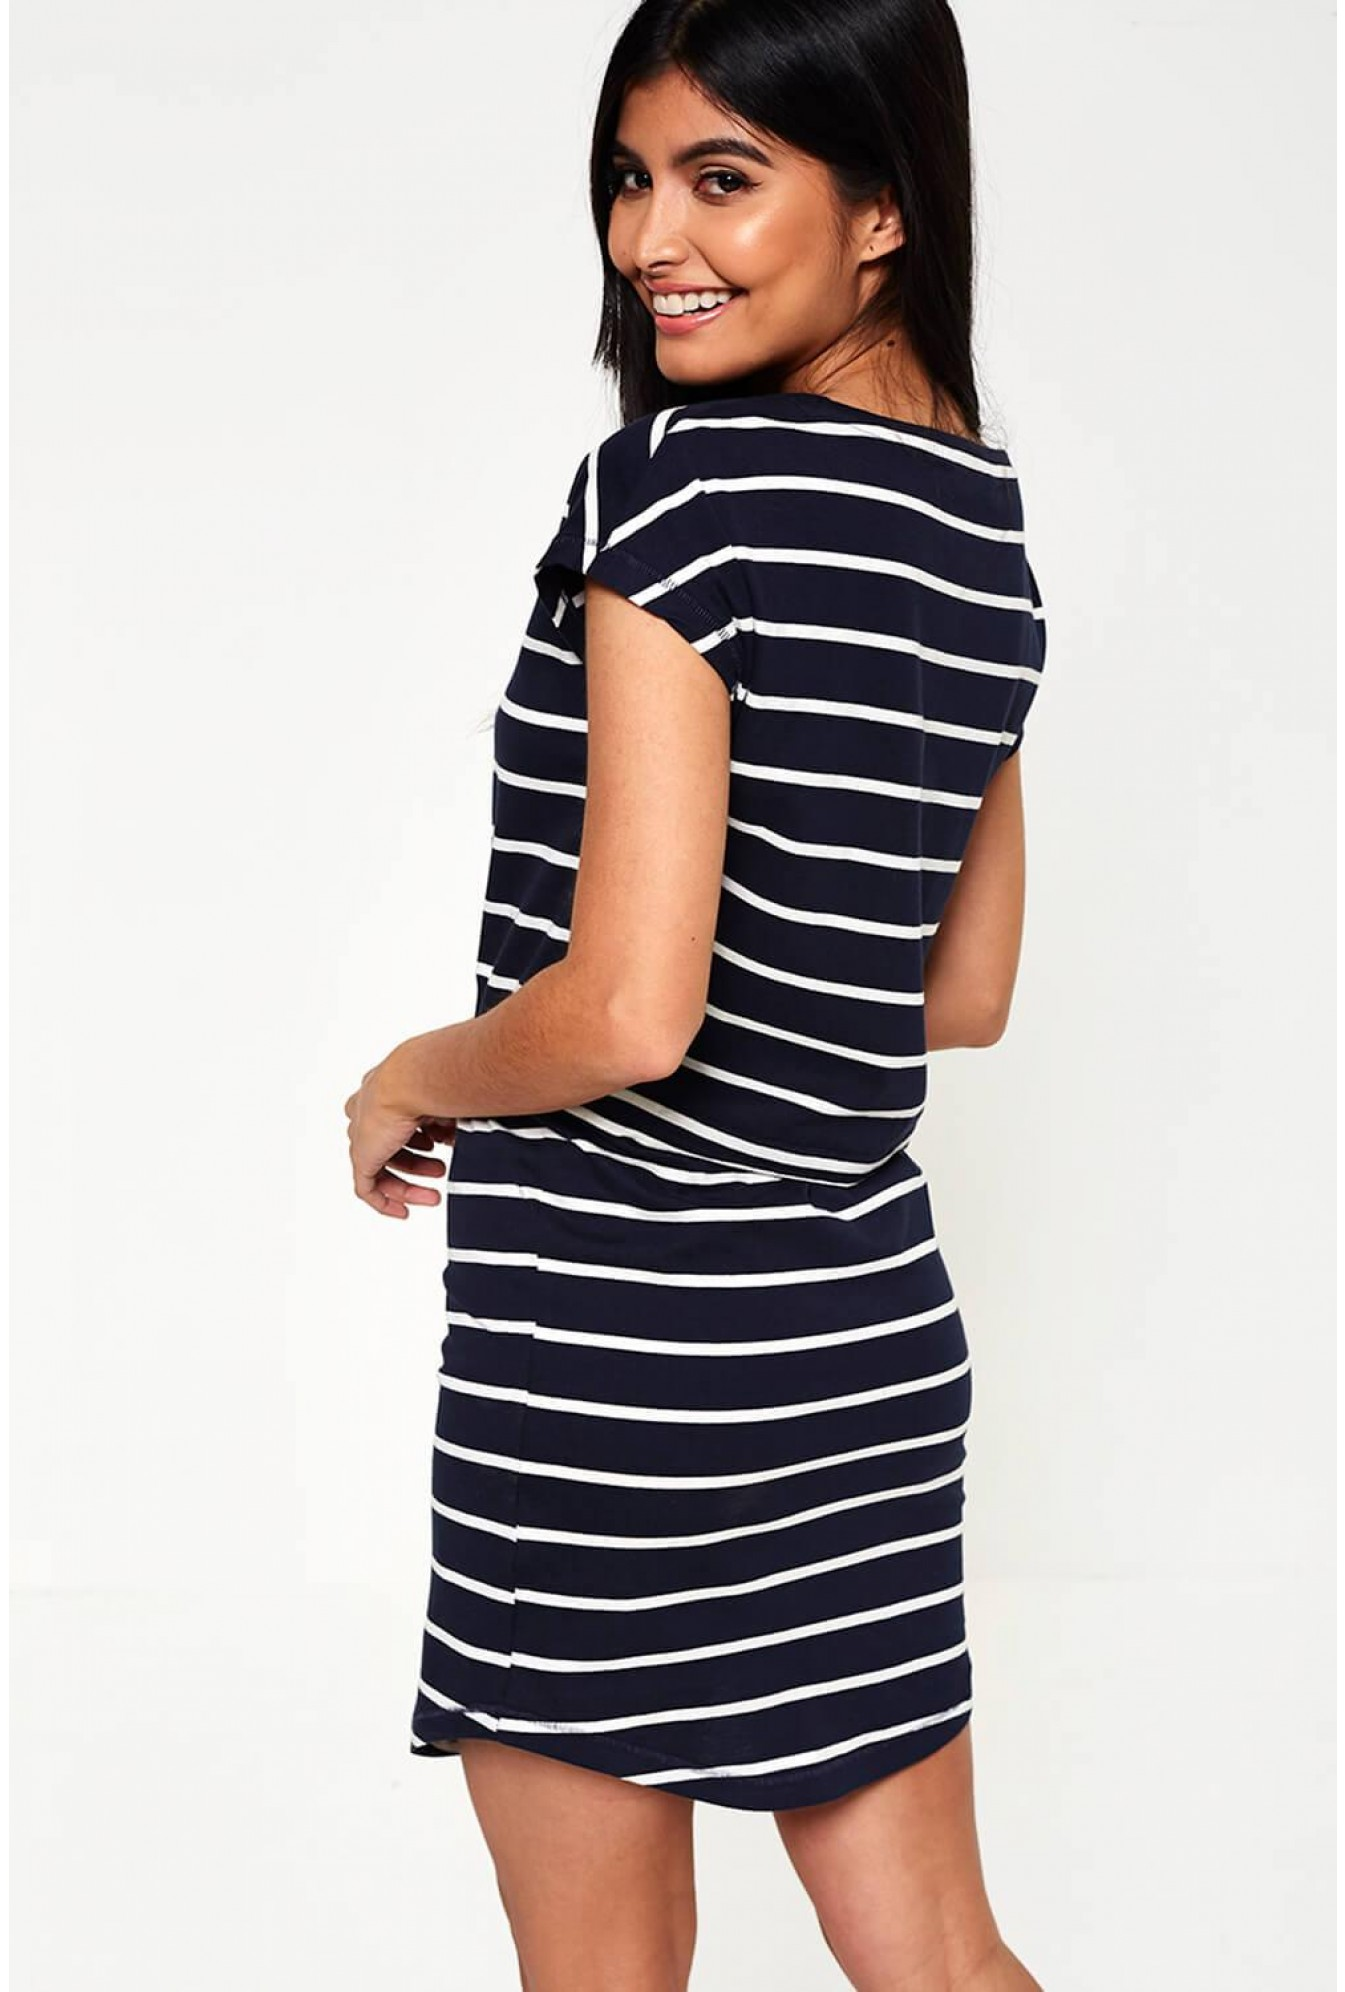 c9c28b9035a8 Only May Cotton Short Sleeve Stripe Dress in Navy | iCLOTHING